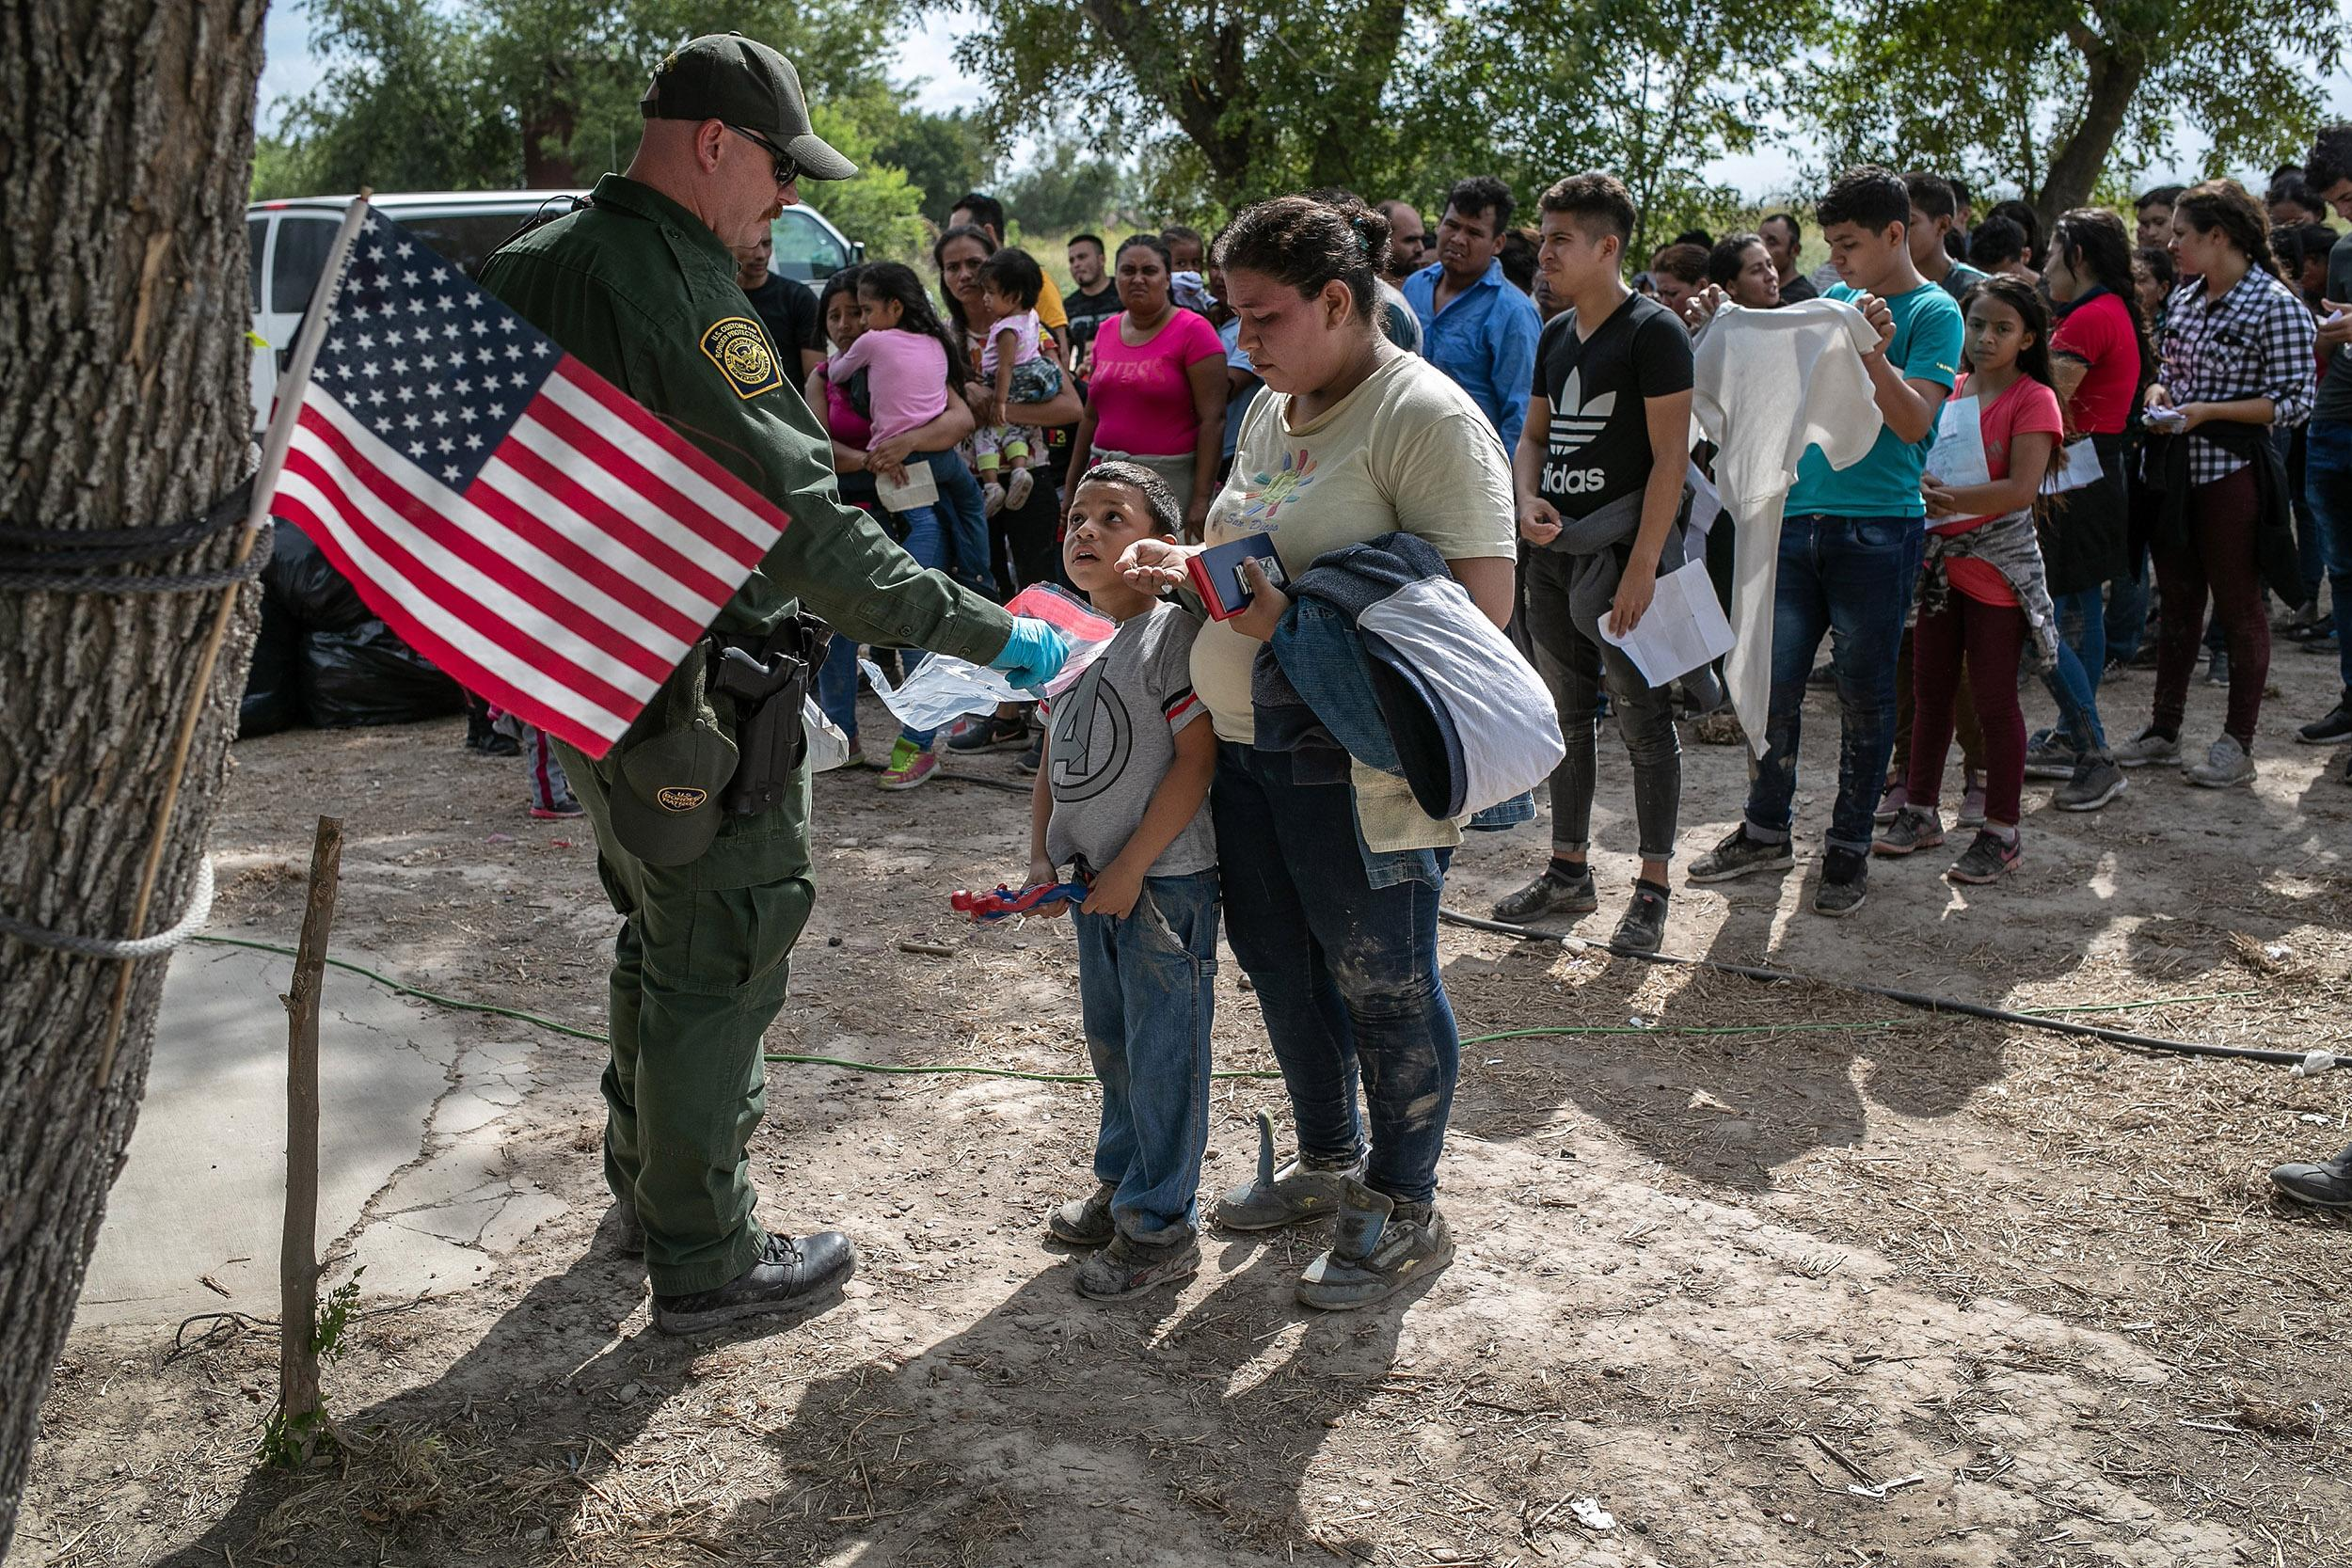 New Trump admin proposal would make it harder for immigrants to claim asylum in U.S.